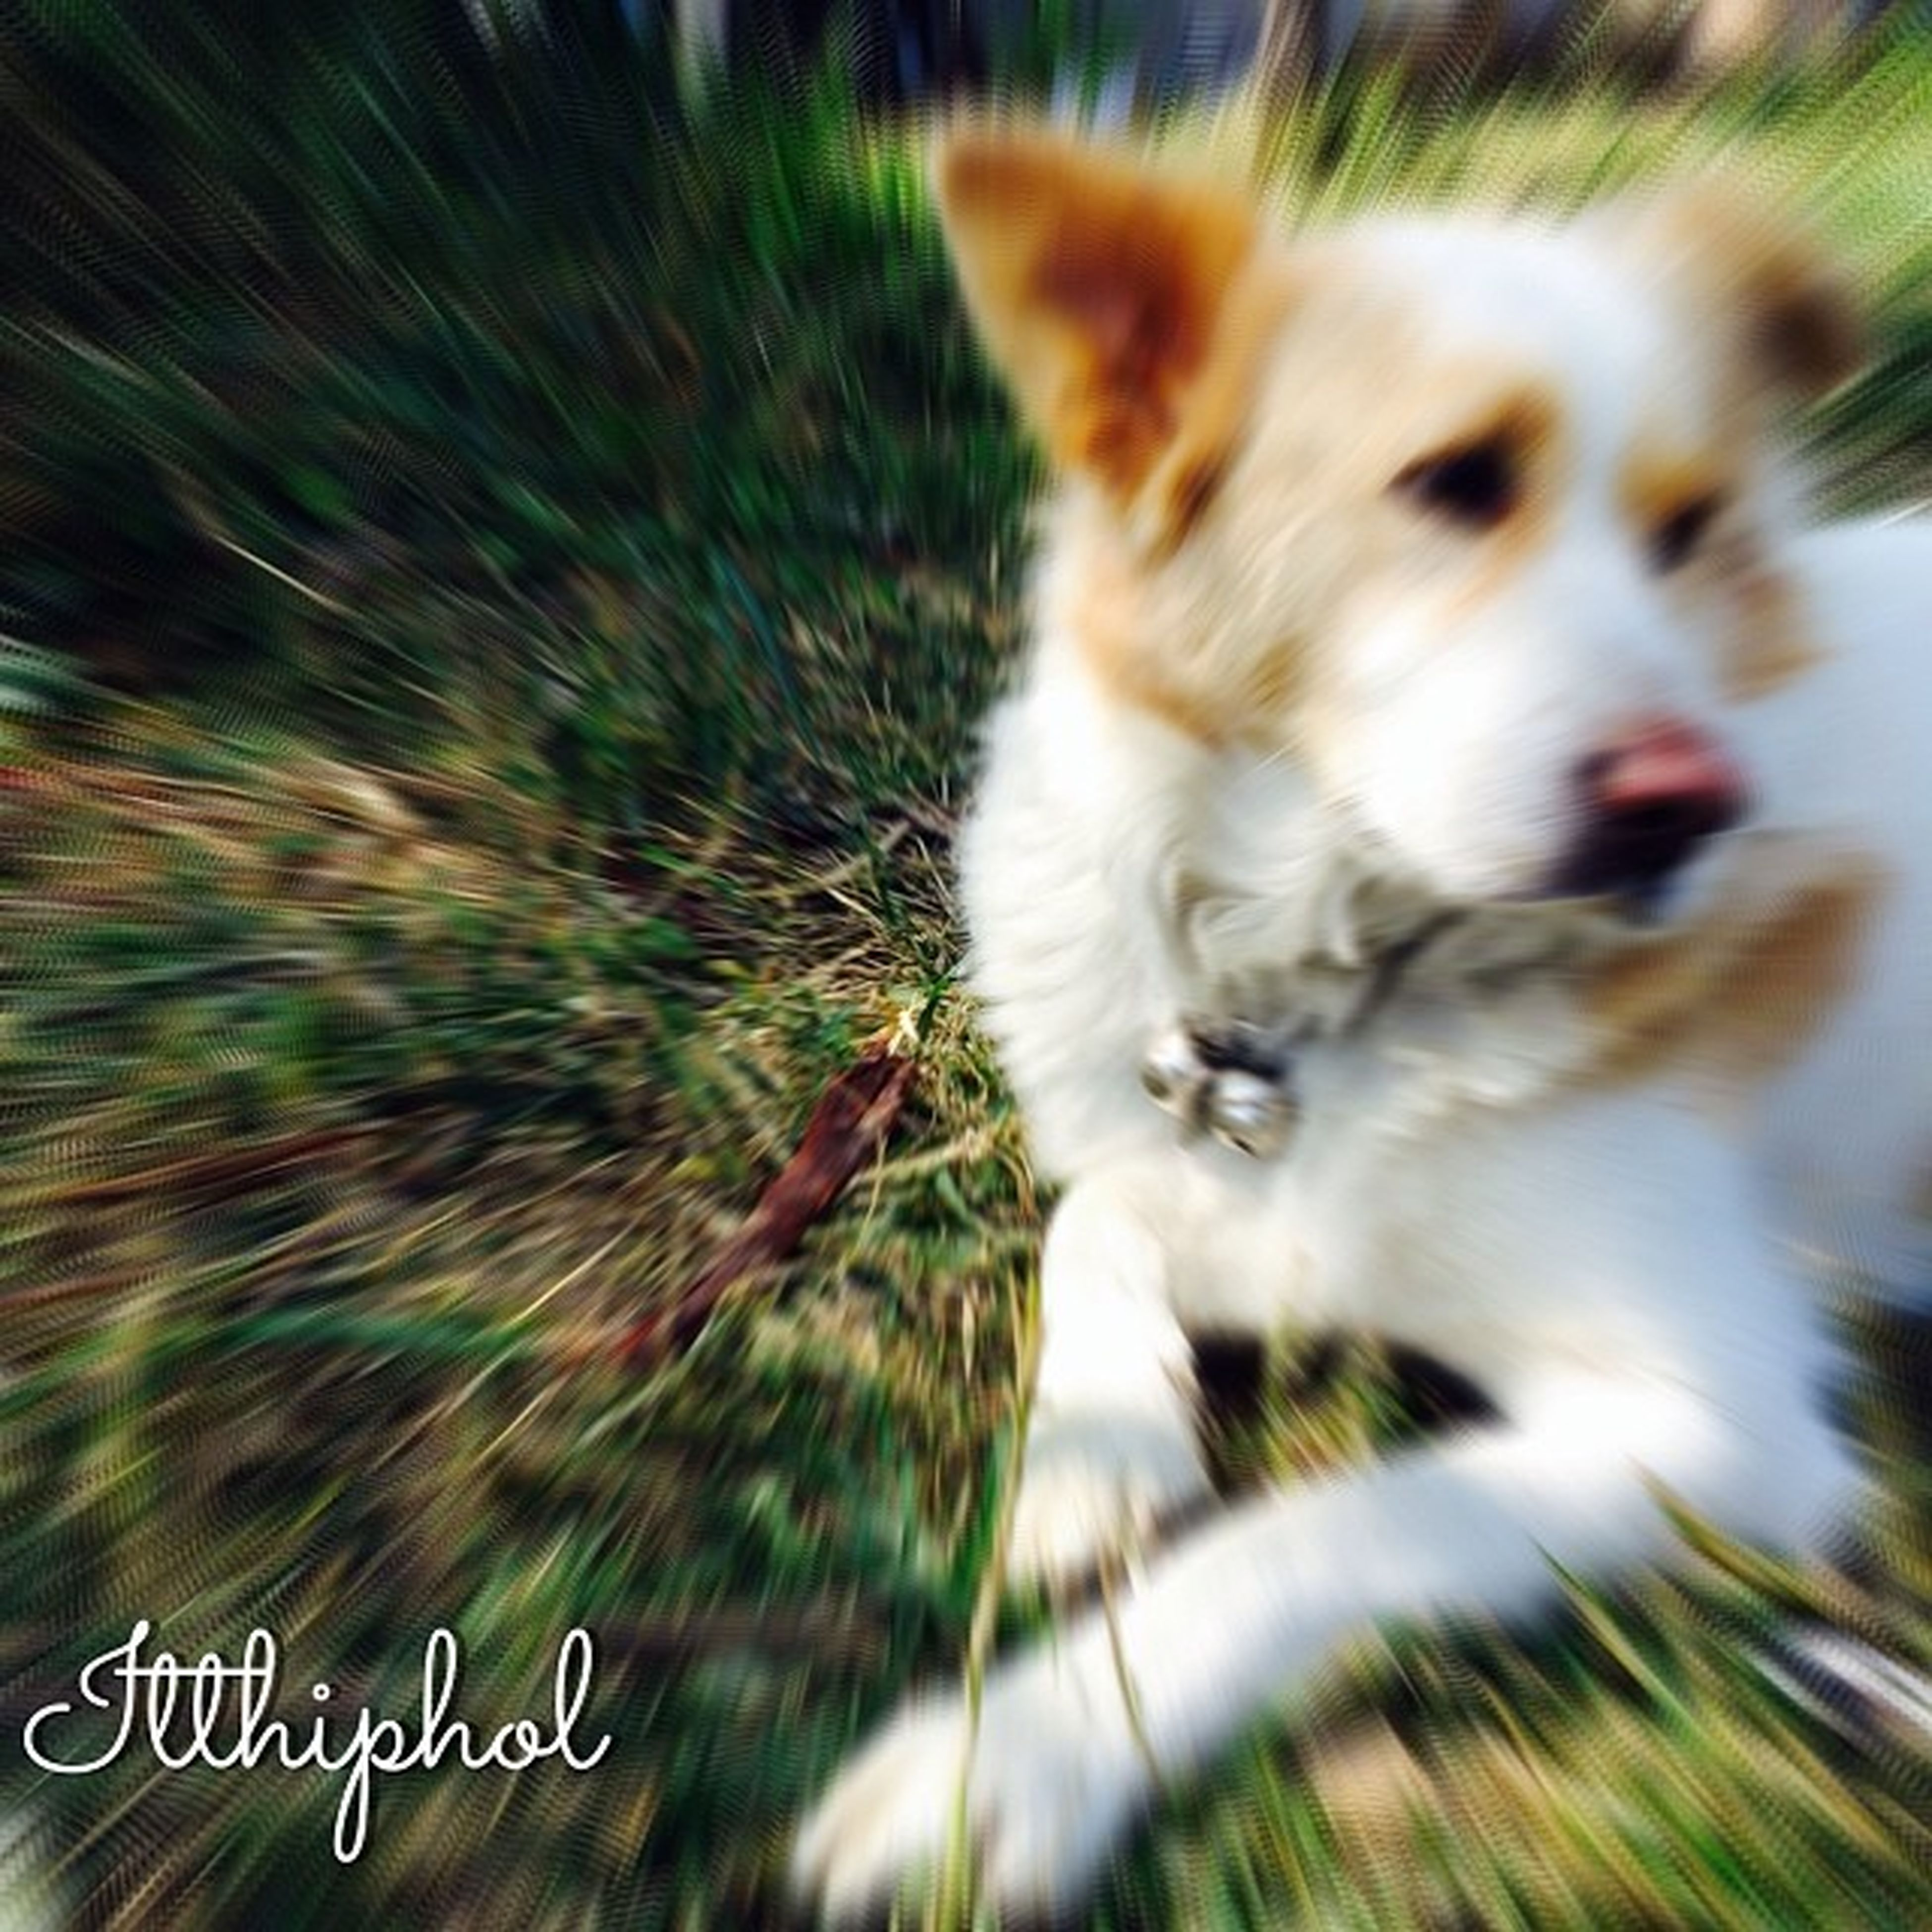 mammal, animal themes, pets, domestic animals, one animal, grass, domestic cat, field, selective focus, cat, day, focus on foreground, no people, close-up, nature, outdoors, dog, two animals, plant, growth